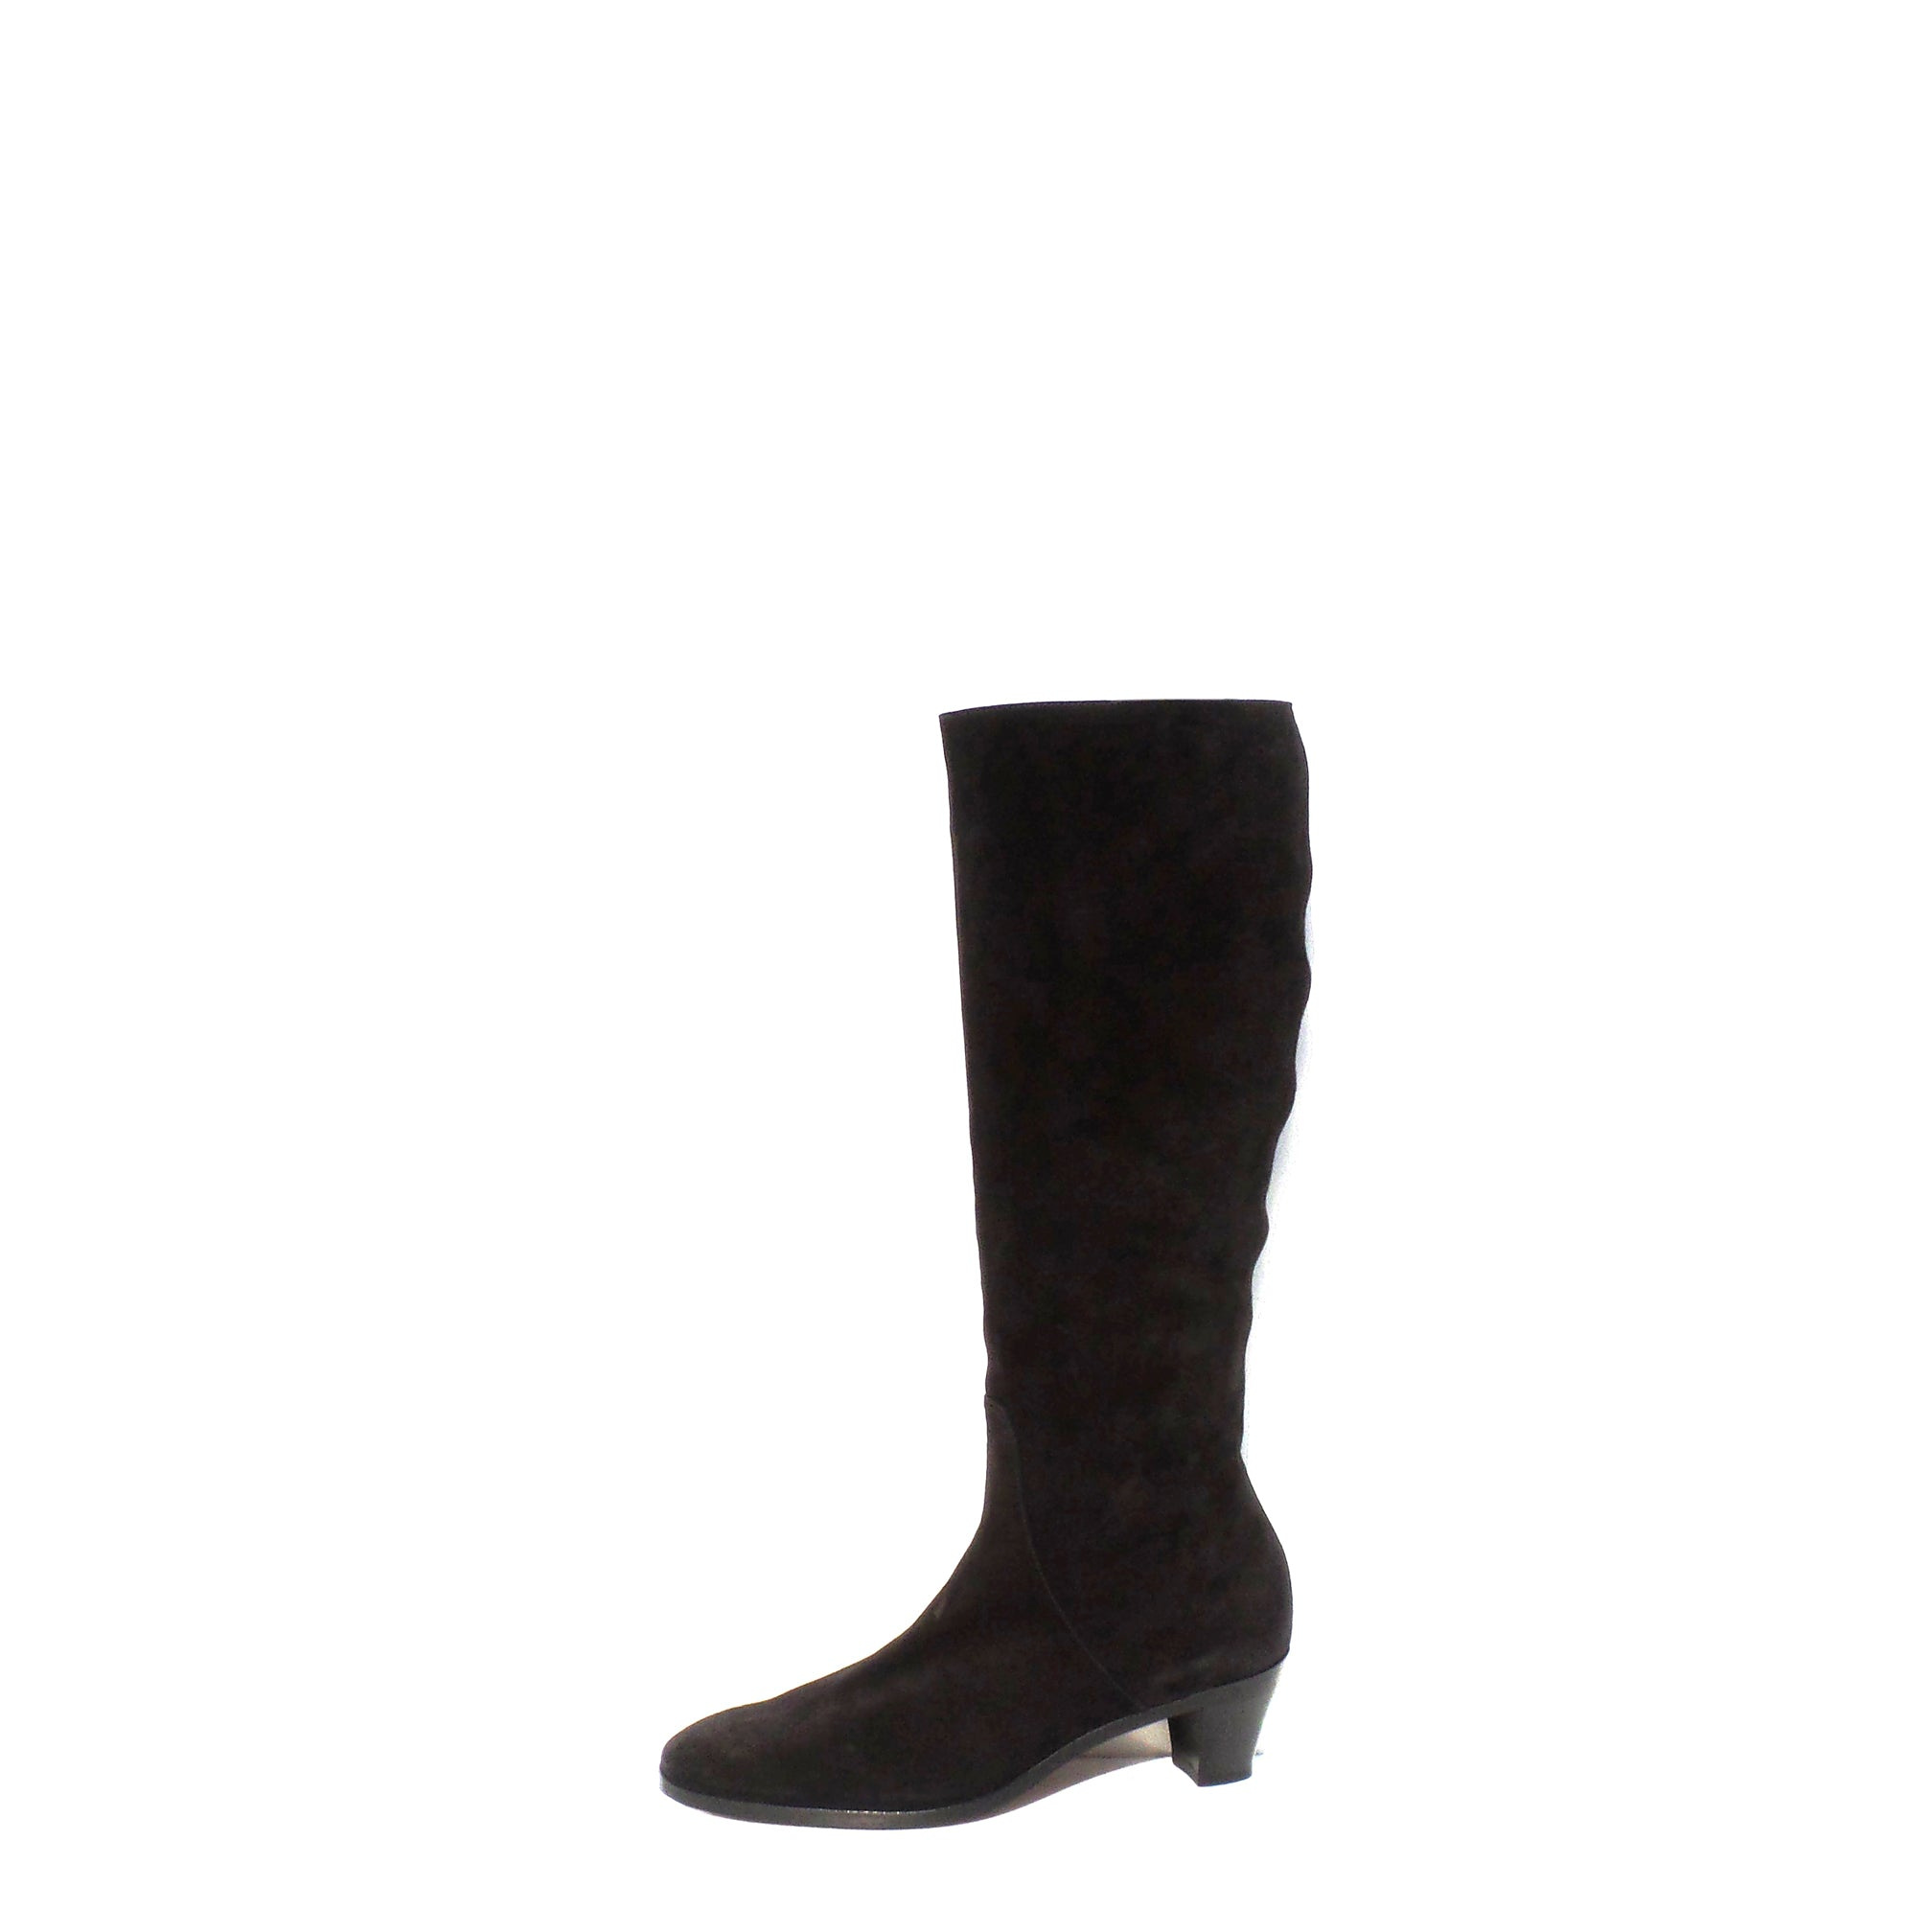 GRAVATI Italy Black Suede Side Zip Stacked Block Heel Knee Boots 7.5 M NWD 4078